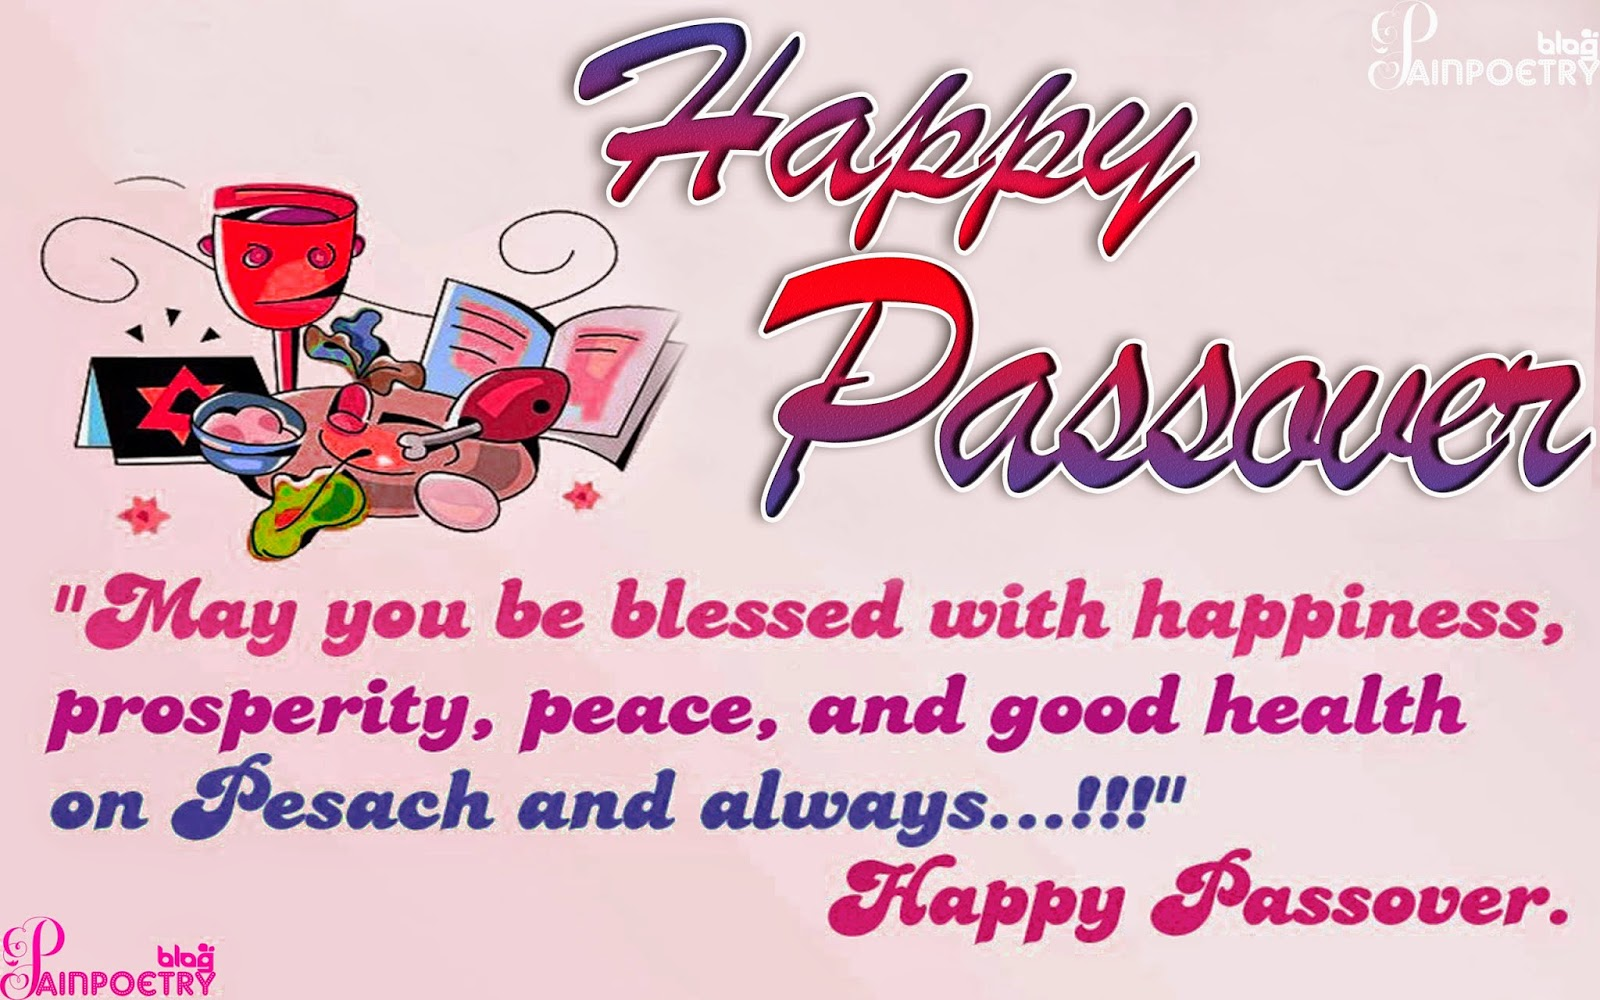 Passover-Wallpaper-Image-Quote-HD